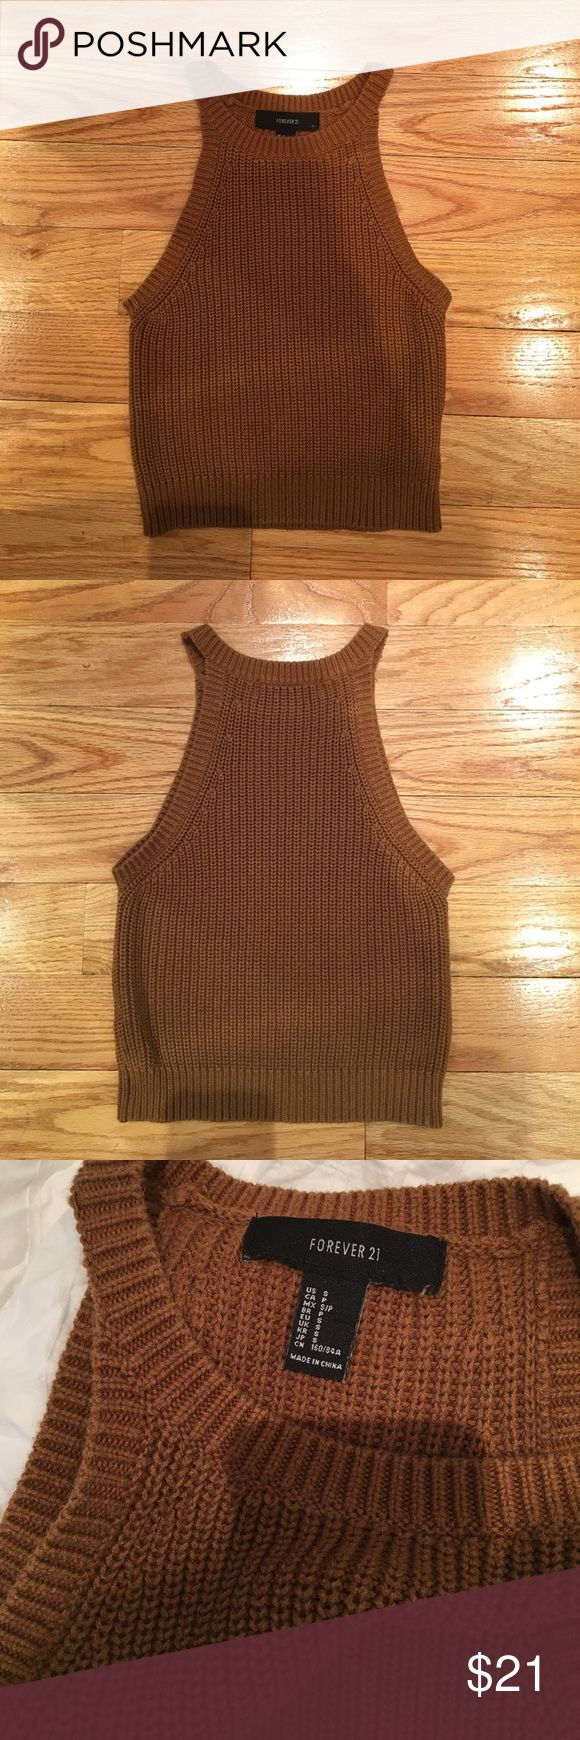 Forever 21 Brown Crop Top Like new. True to size. No Trades. Forever 21 Tops Crop Tops